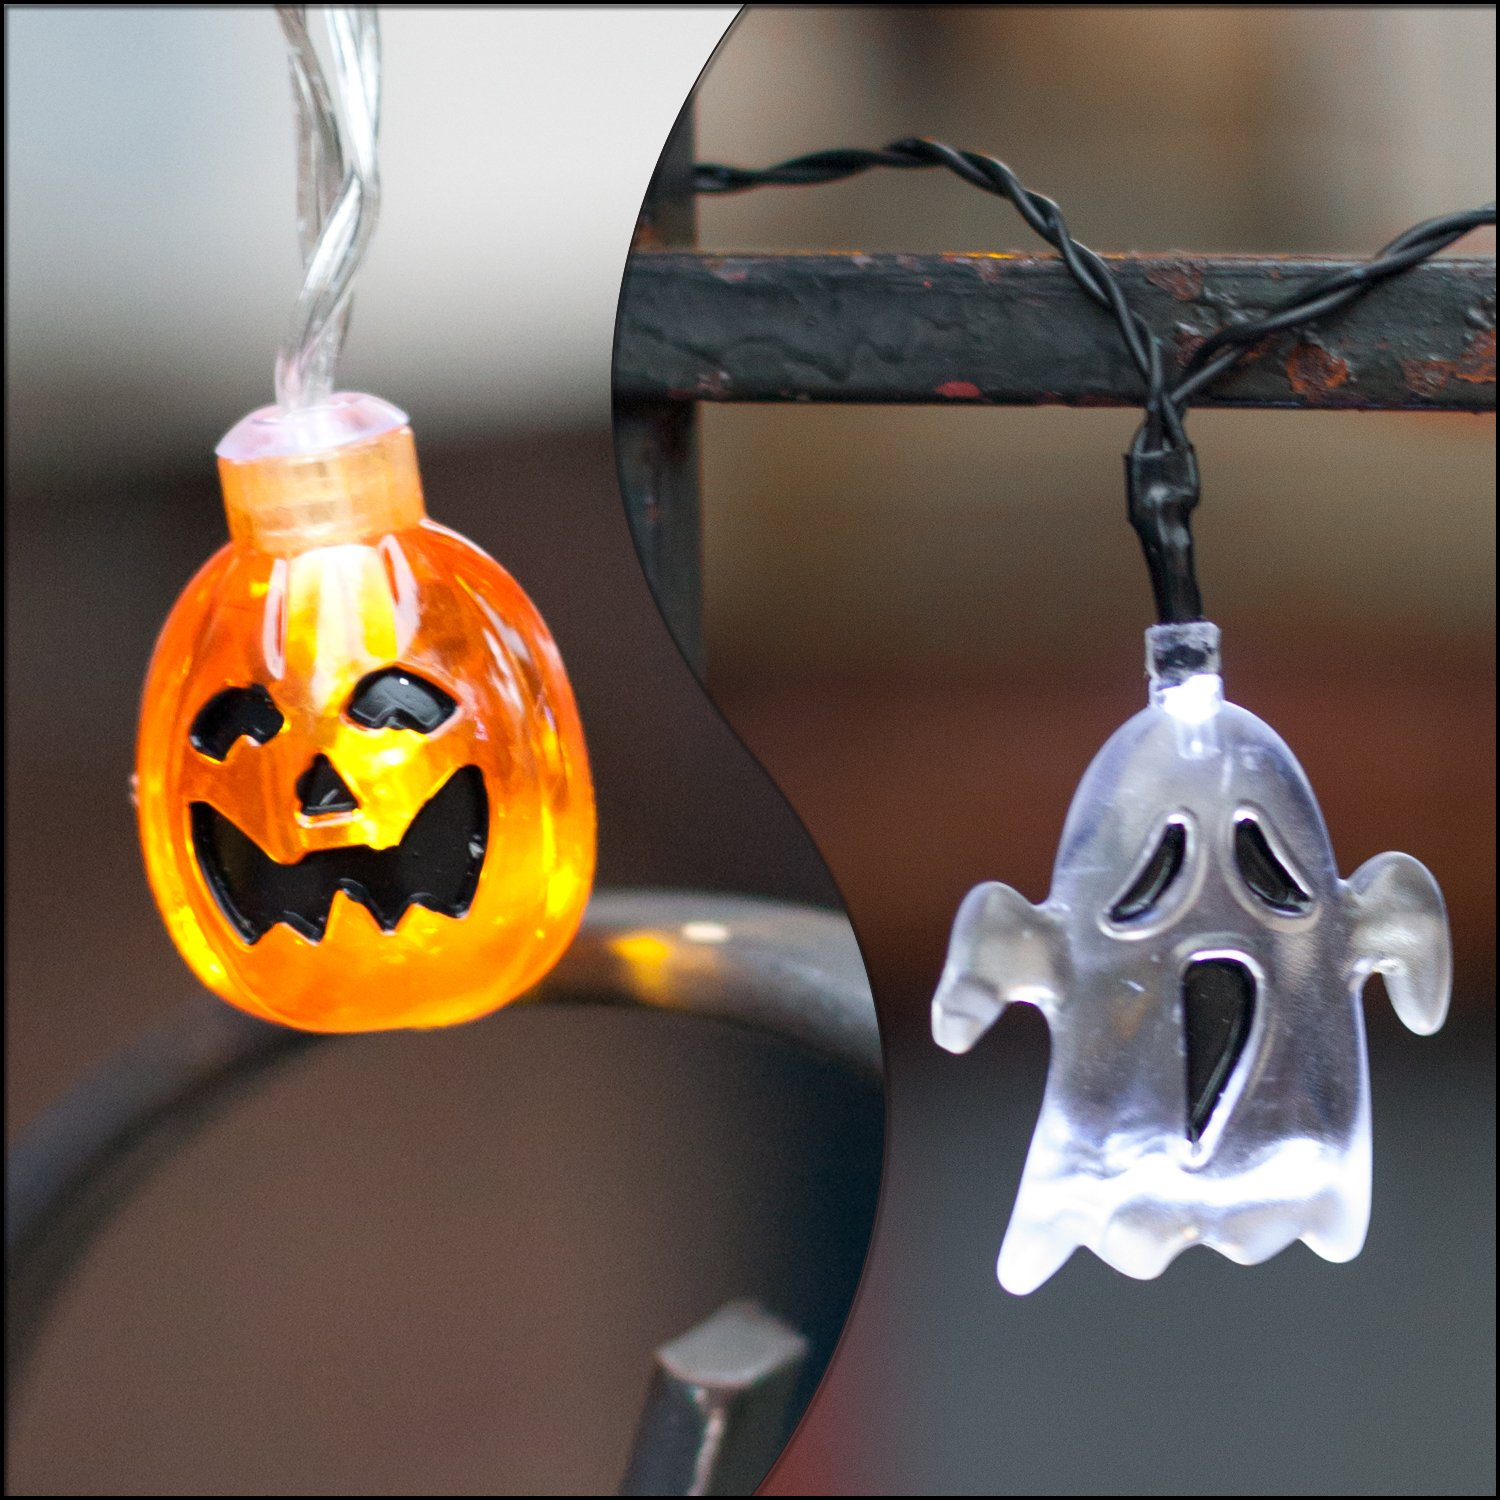 Set of 2 Halloween Themed Battery Operated String Lights with 10 LEDs - Ghost and Pumpkin by LampLust